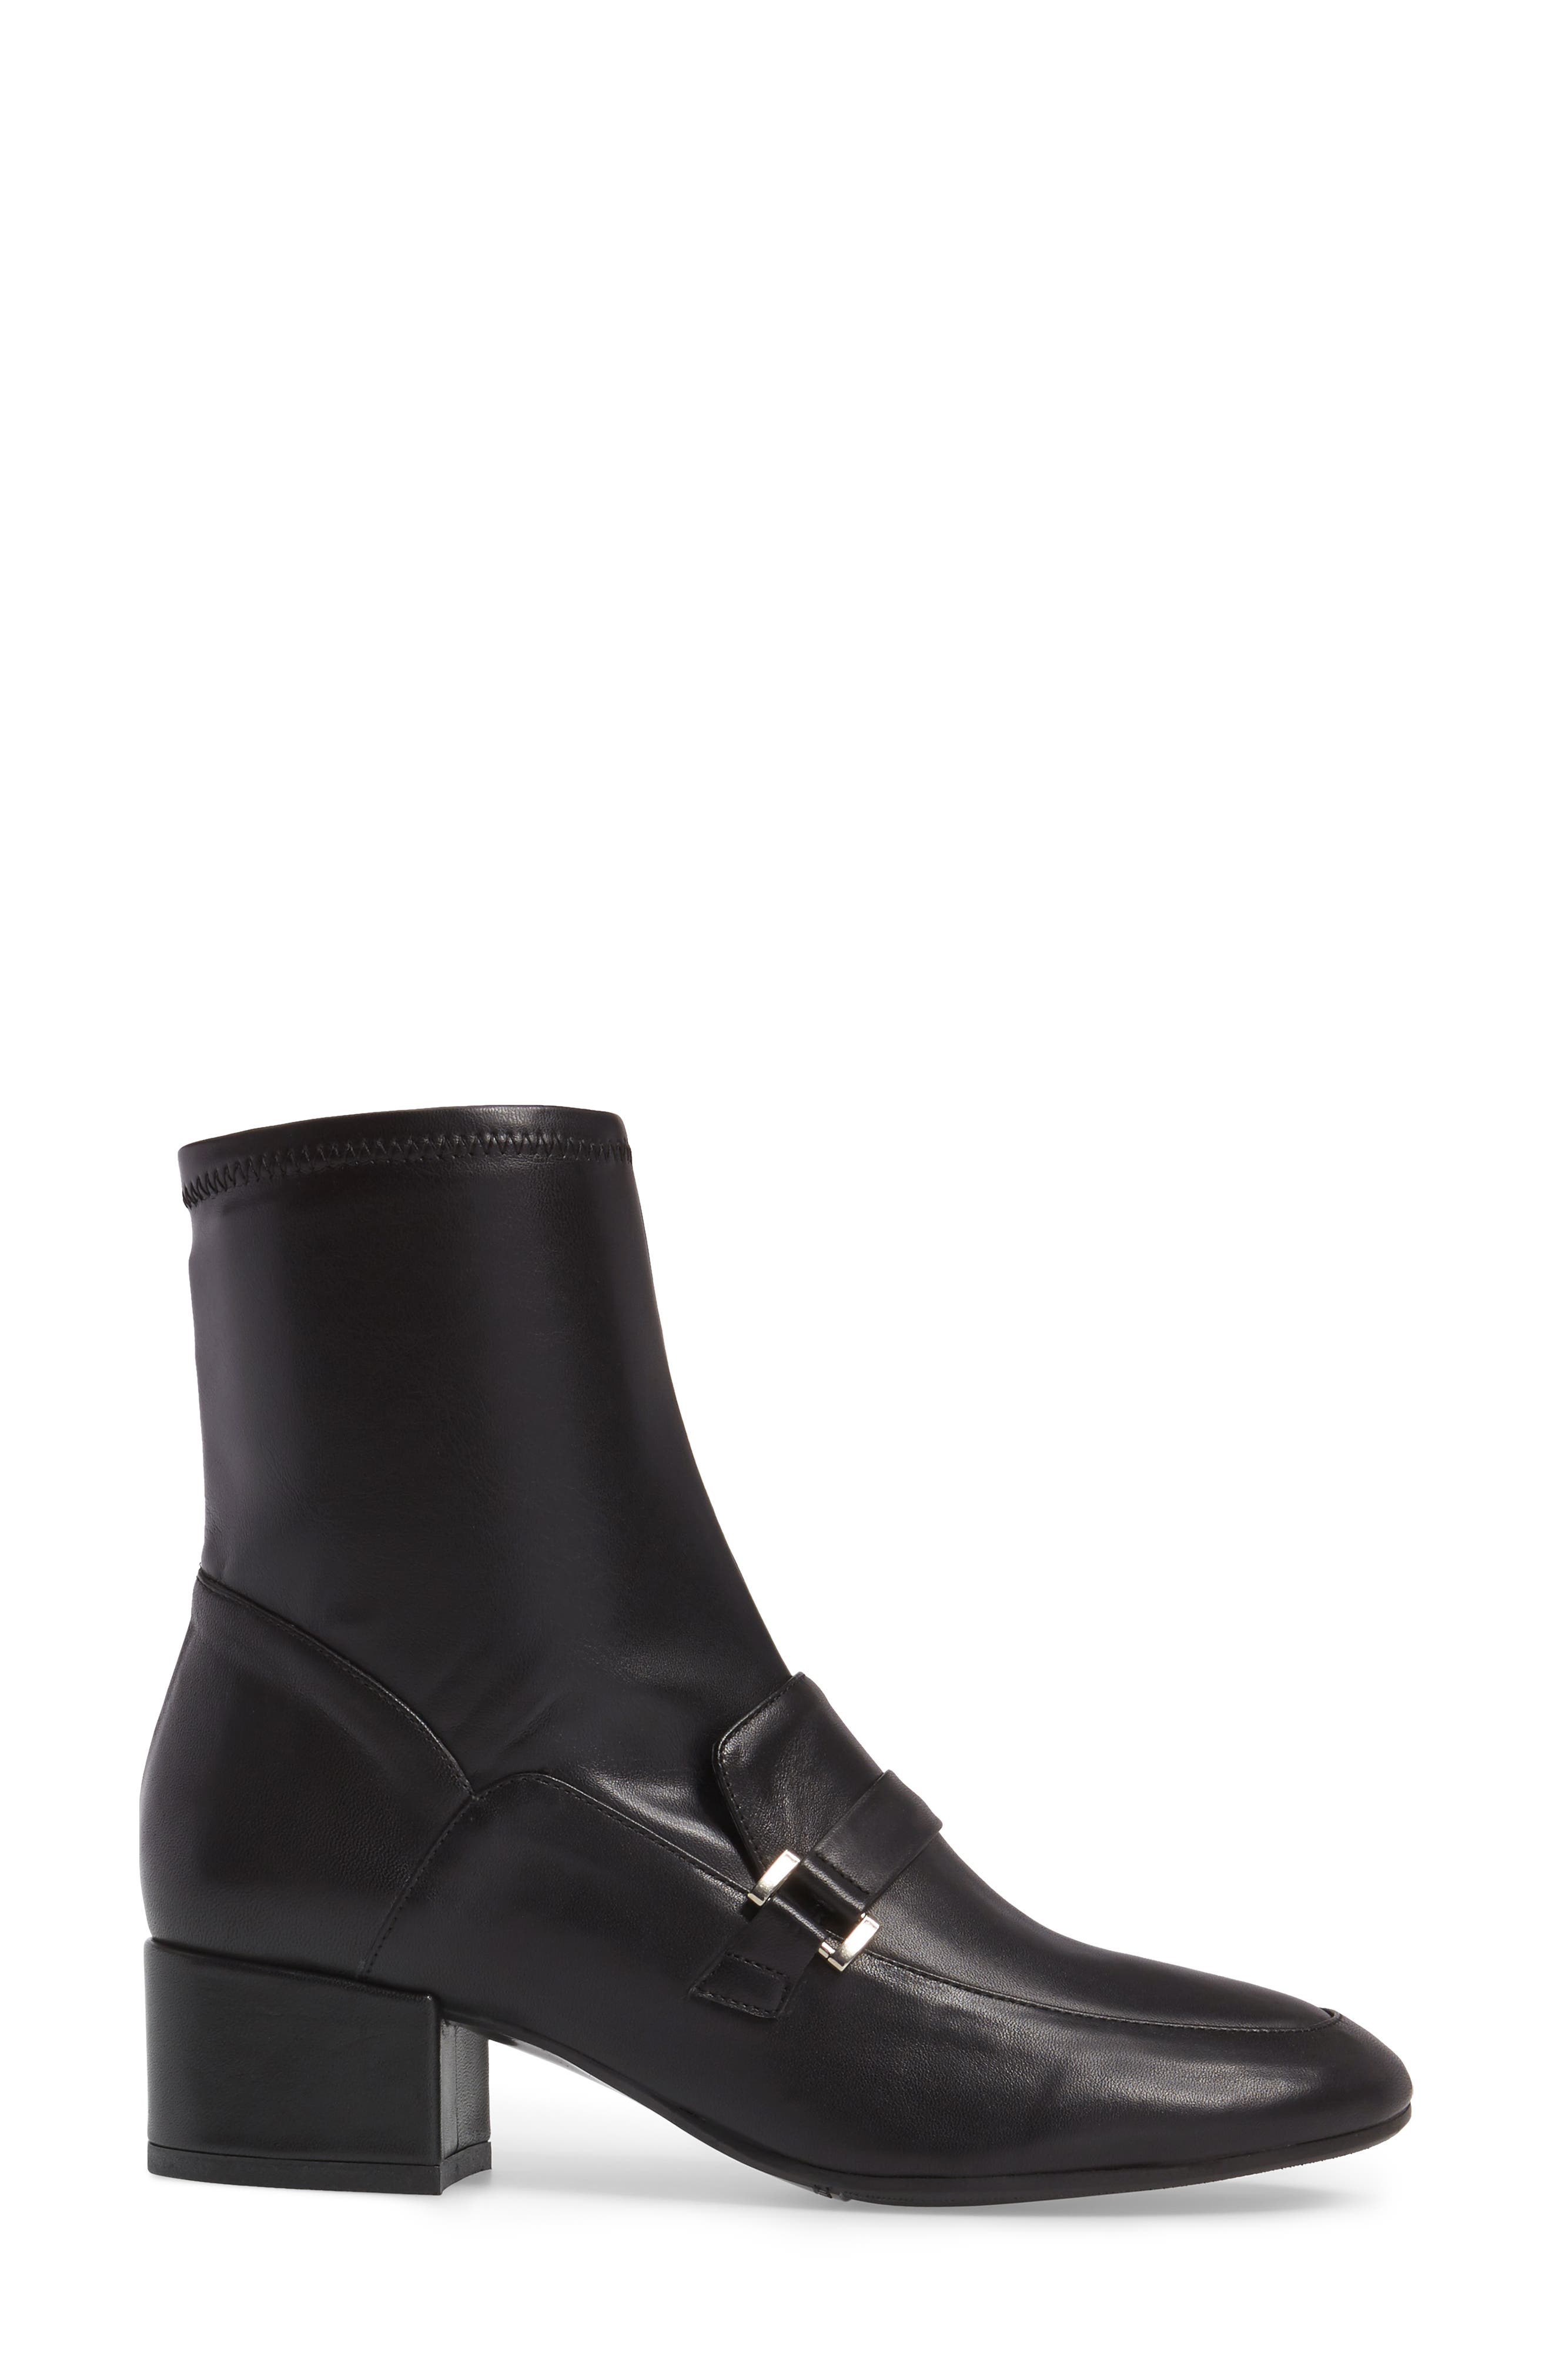 Mod Loafer Bootie,                             Alternate thumbnail 3, color,                             001